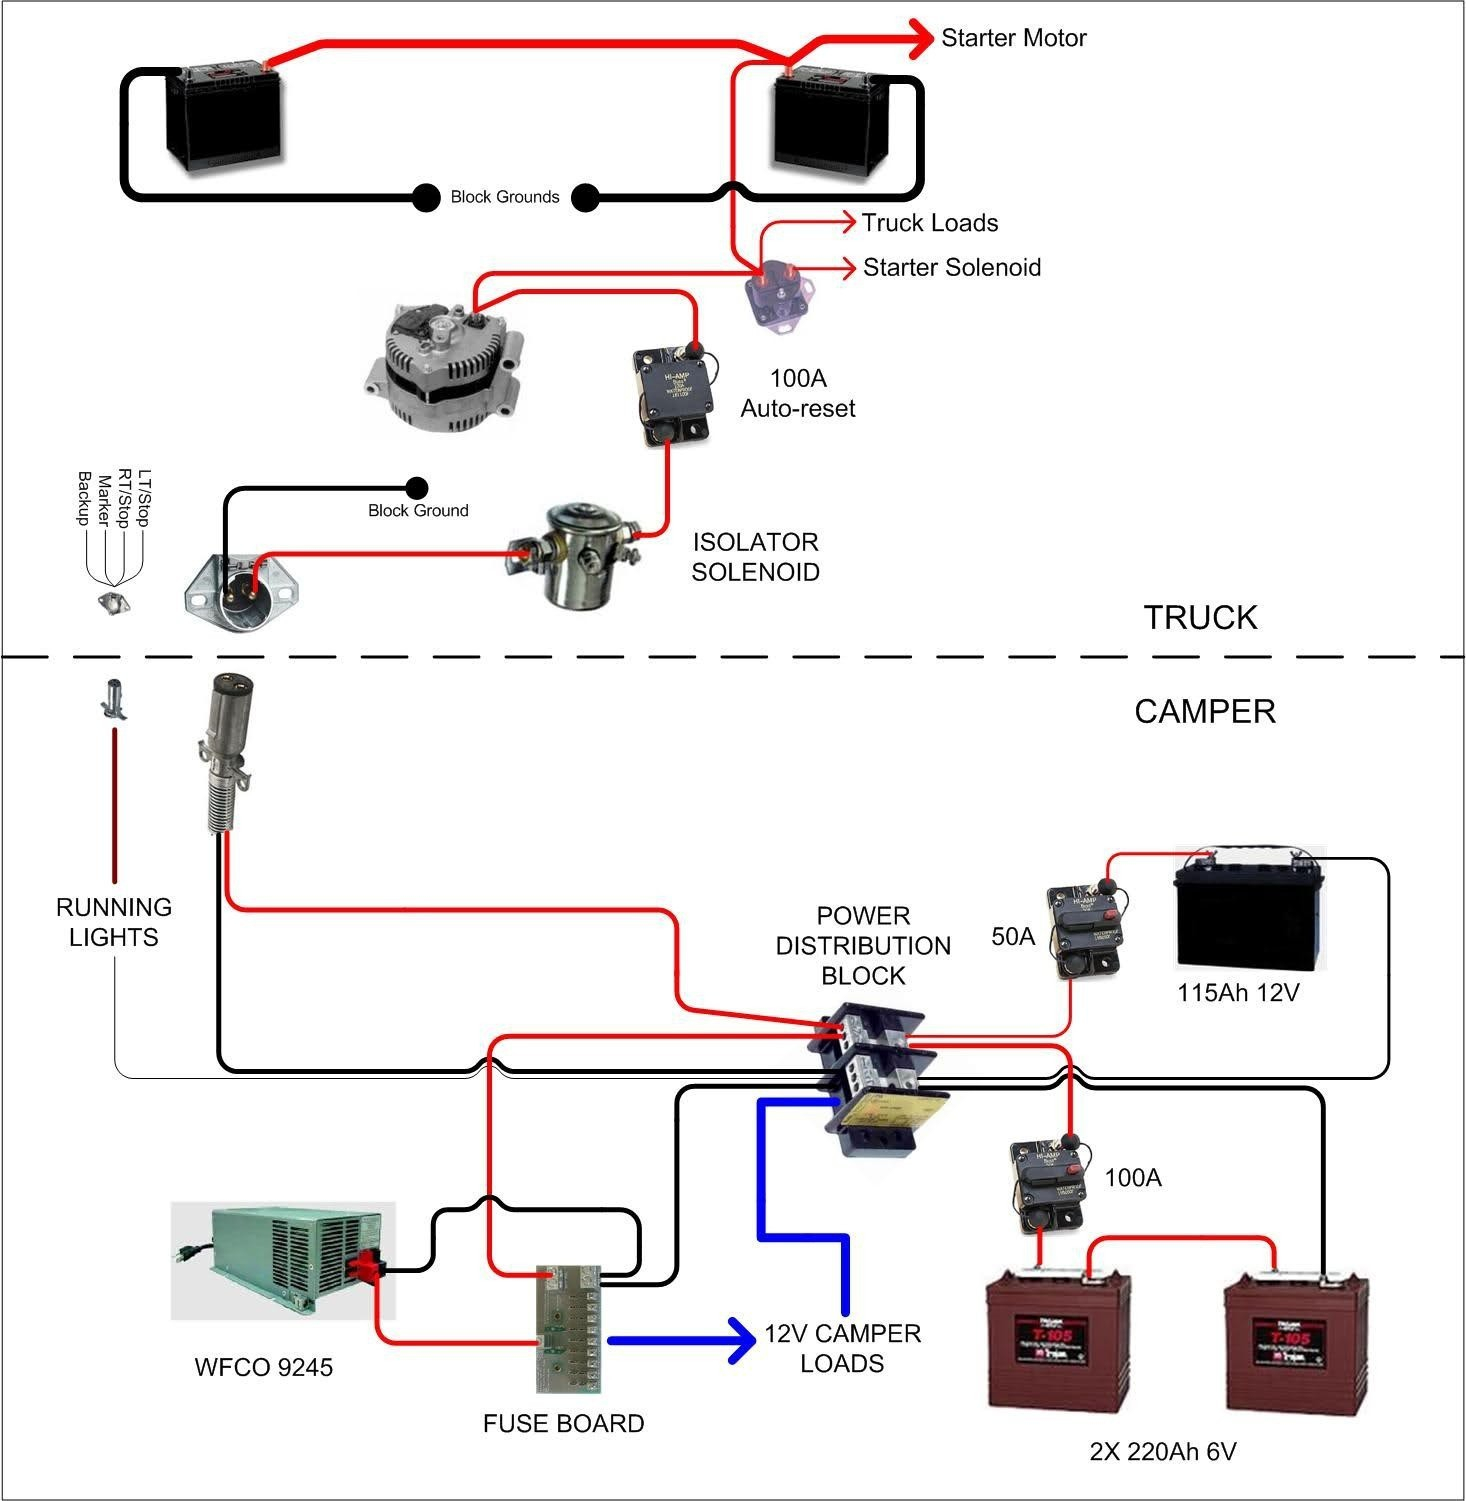 Challenger On Rv Battery Wiring Diagram | Manual E-Books - Travel Trailer Battery Wiring Diagram